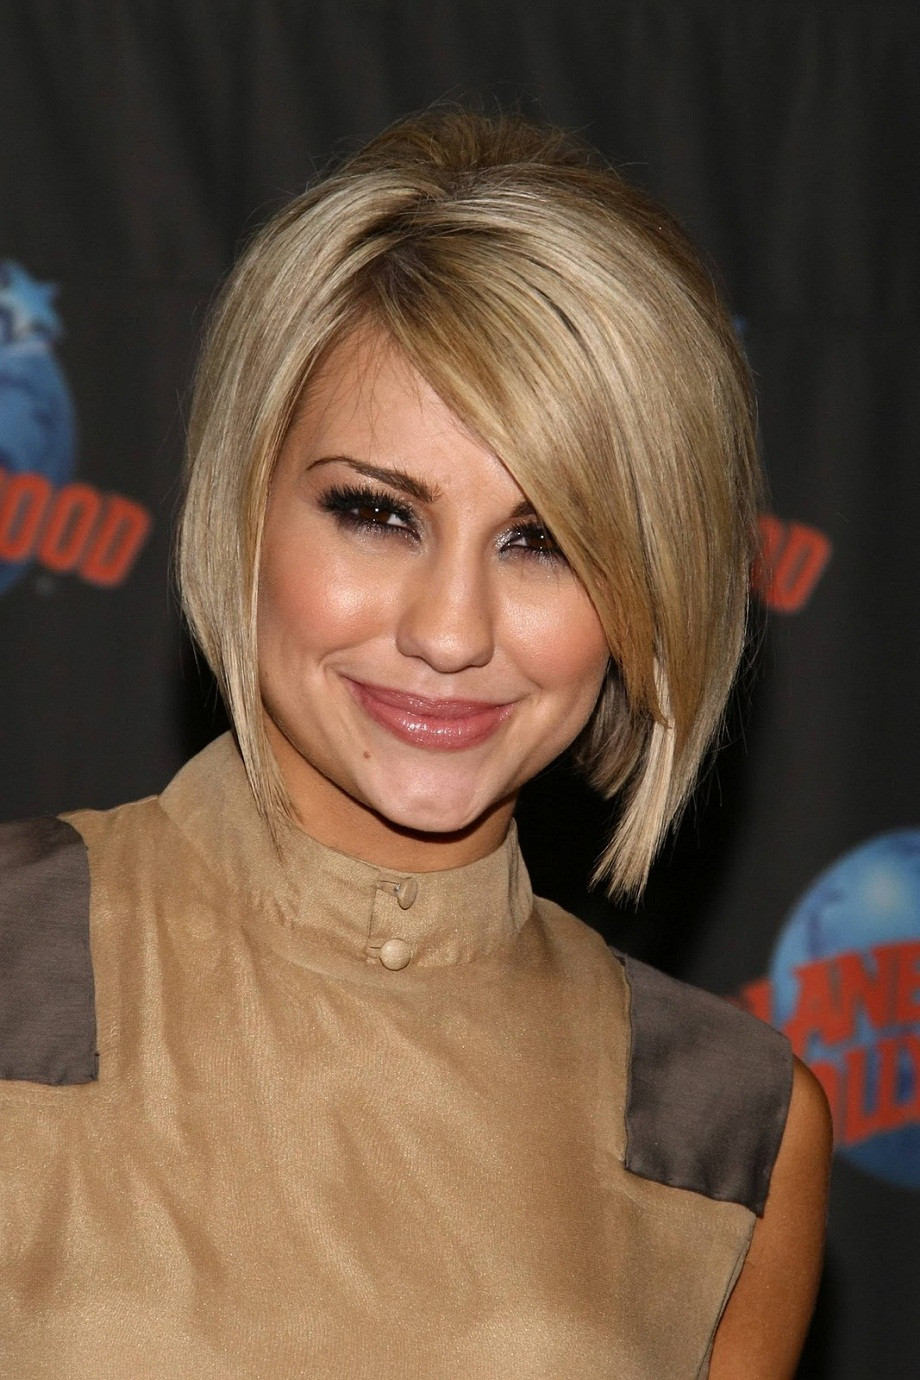 Best ideas about A Bob Hairstyle . Save or Pin 45 Stunning And Beautiful Collection Bob Hairstyles Now.